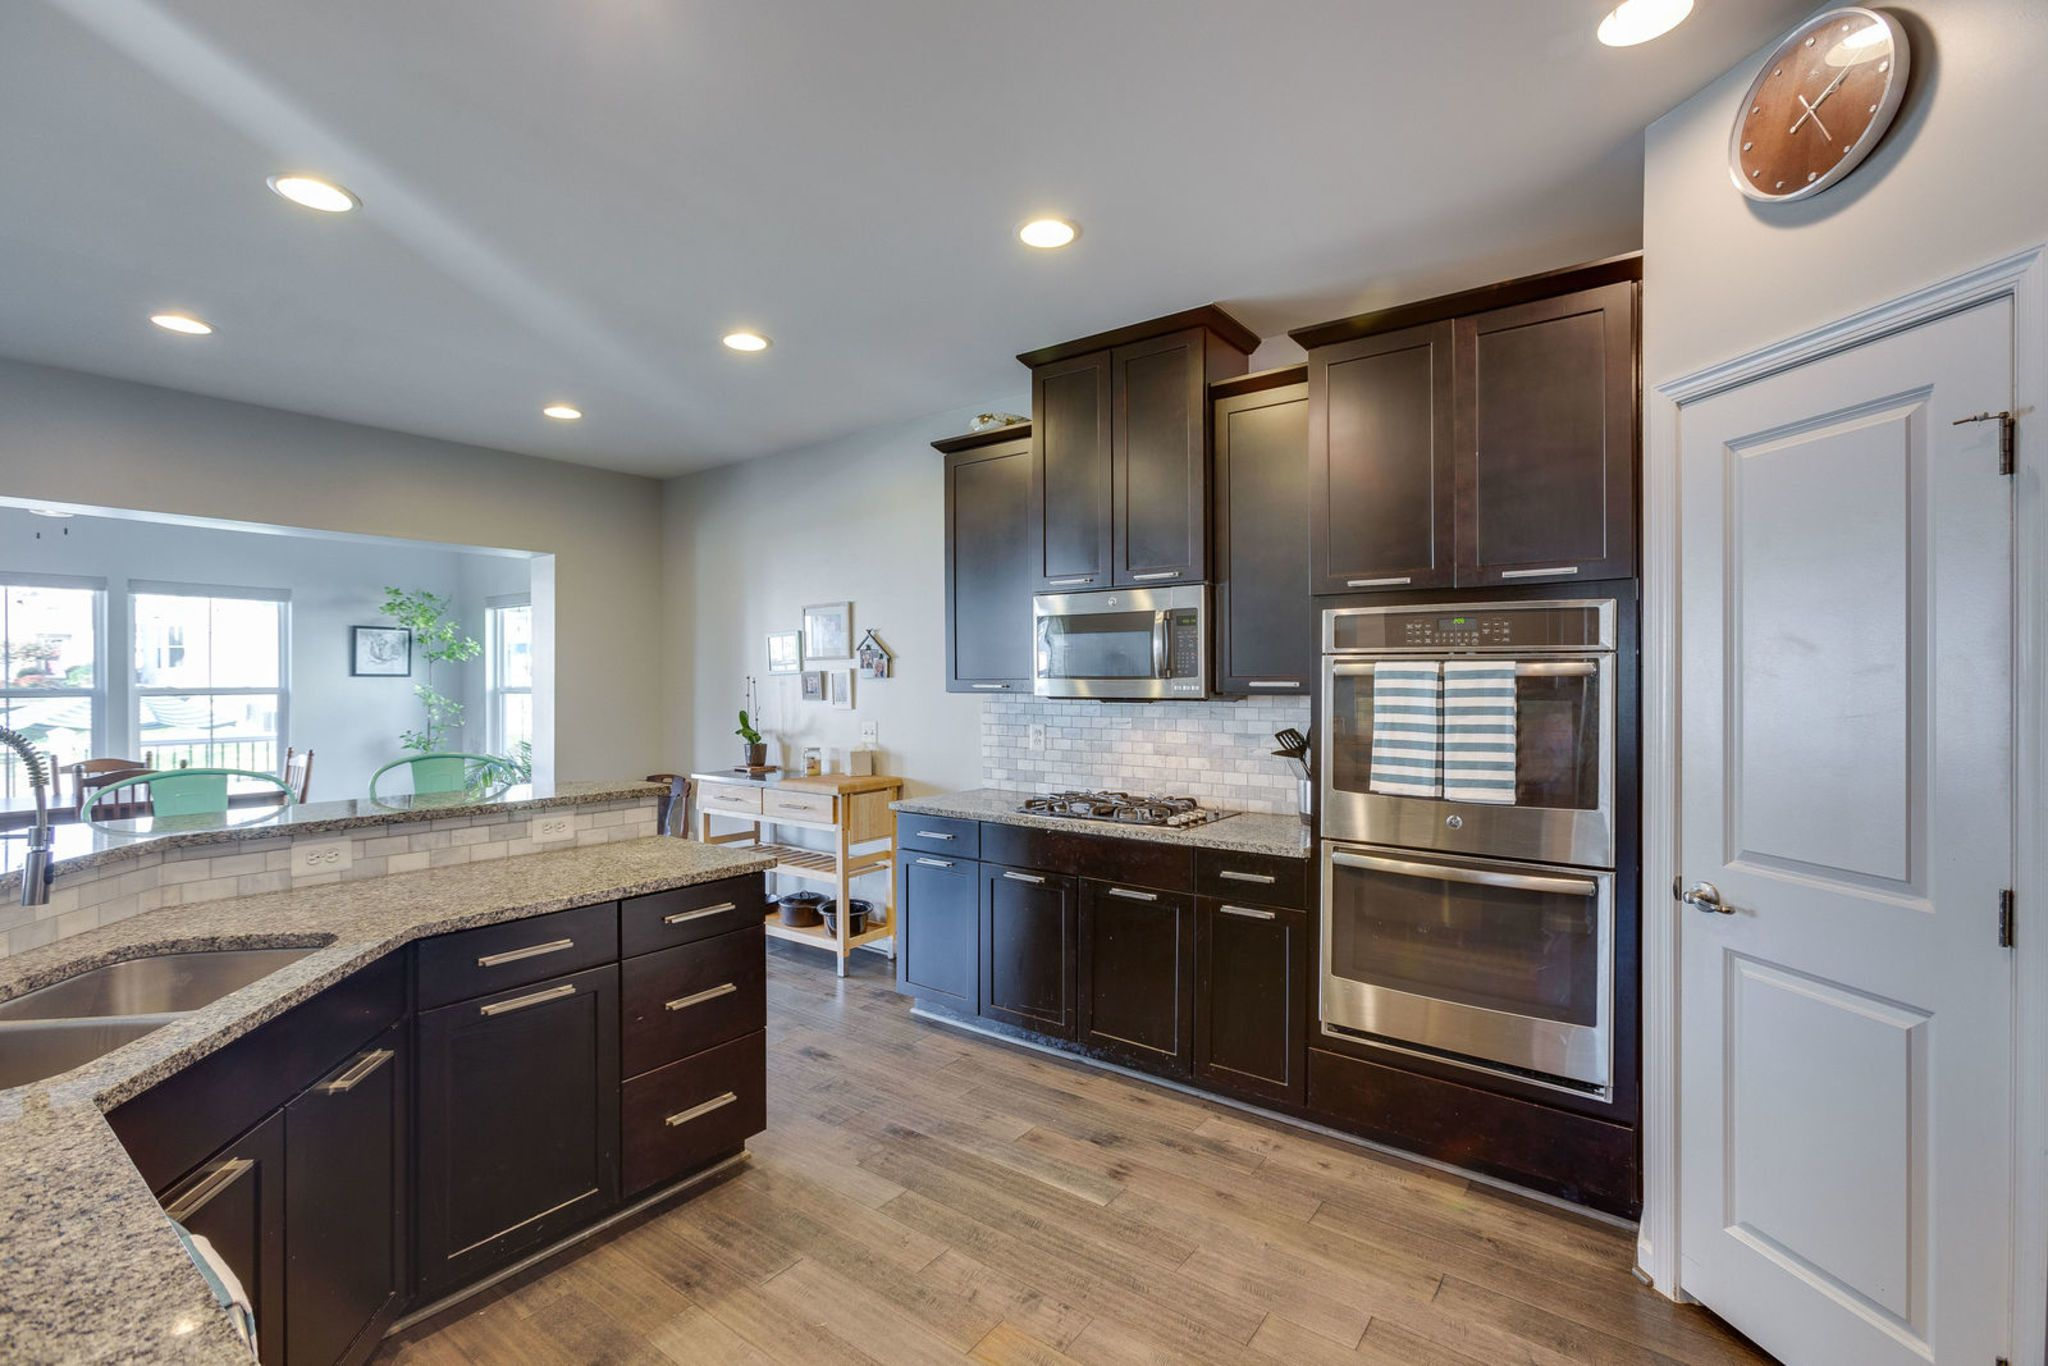 5 Tips To Update Your Kitchen Alexandria Va Homes For Sale Laminate Cabinets Updated Kitchen Kitchen